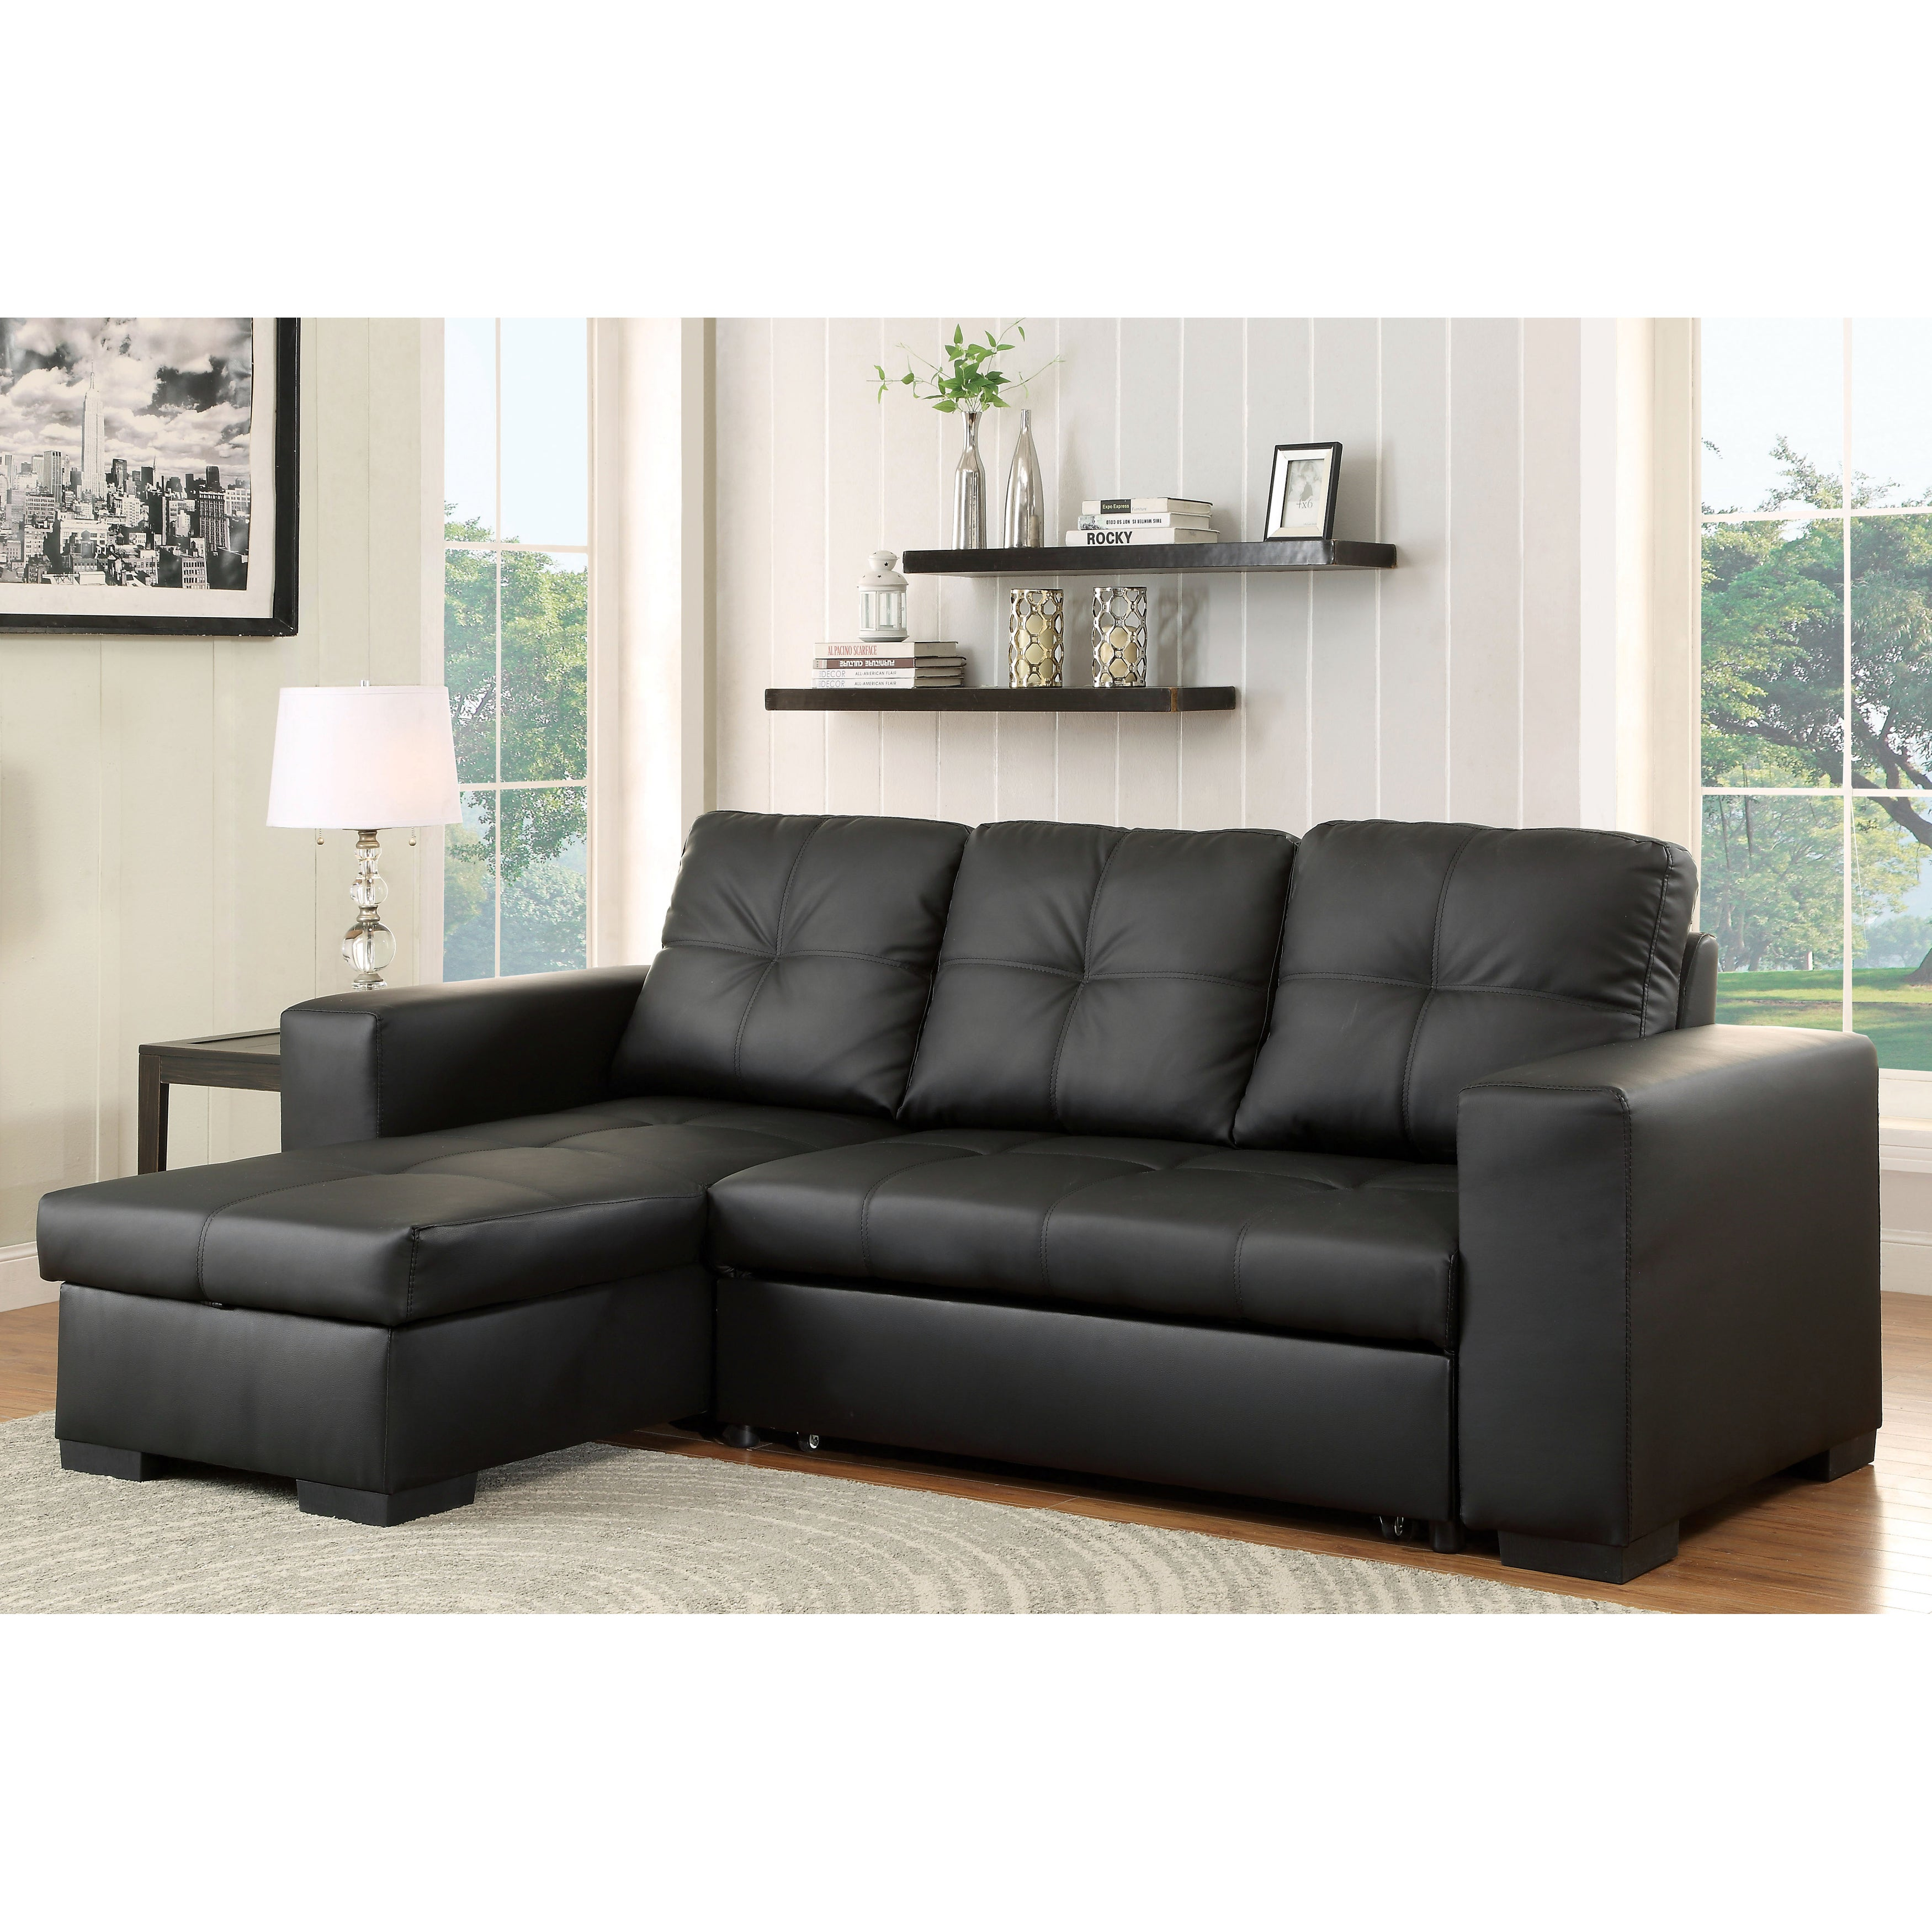 Remarkable Sagel Contemporary 2 Piece Sectional By Foa Cjindustries Chair Design For Home Cjindustriesco